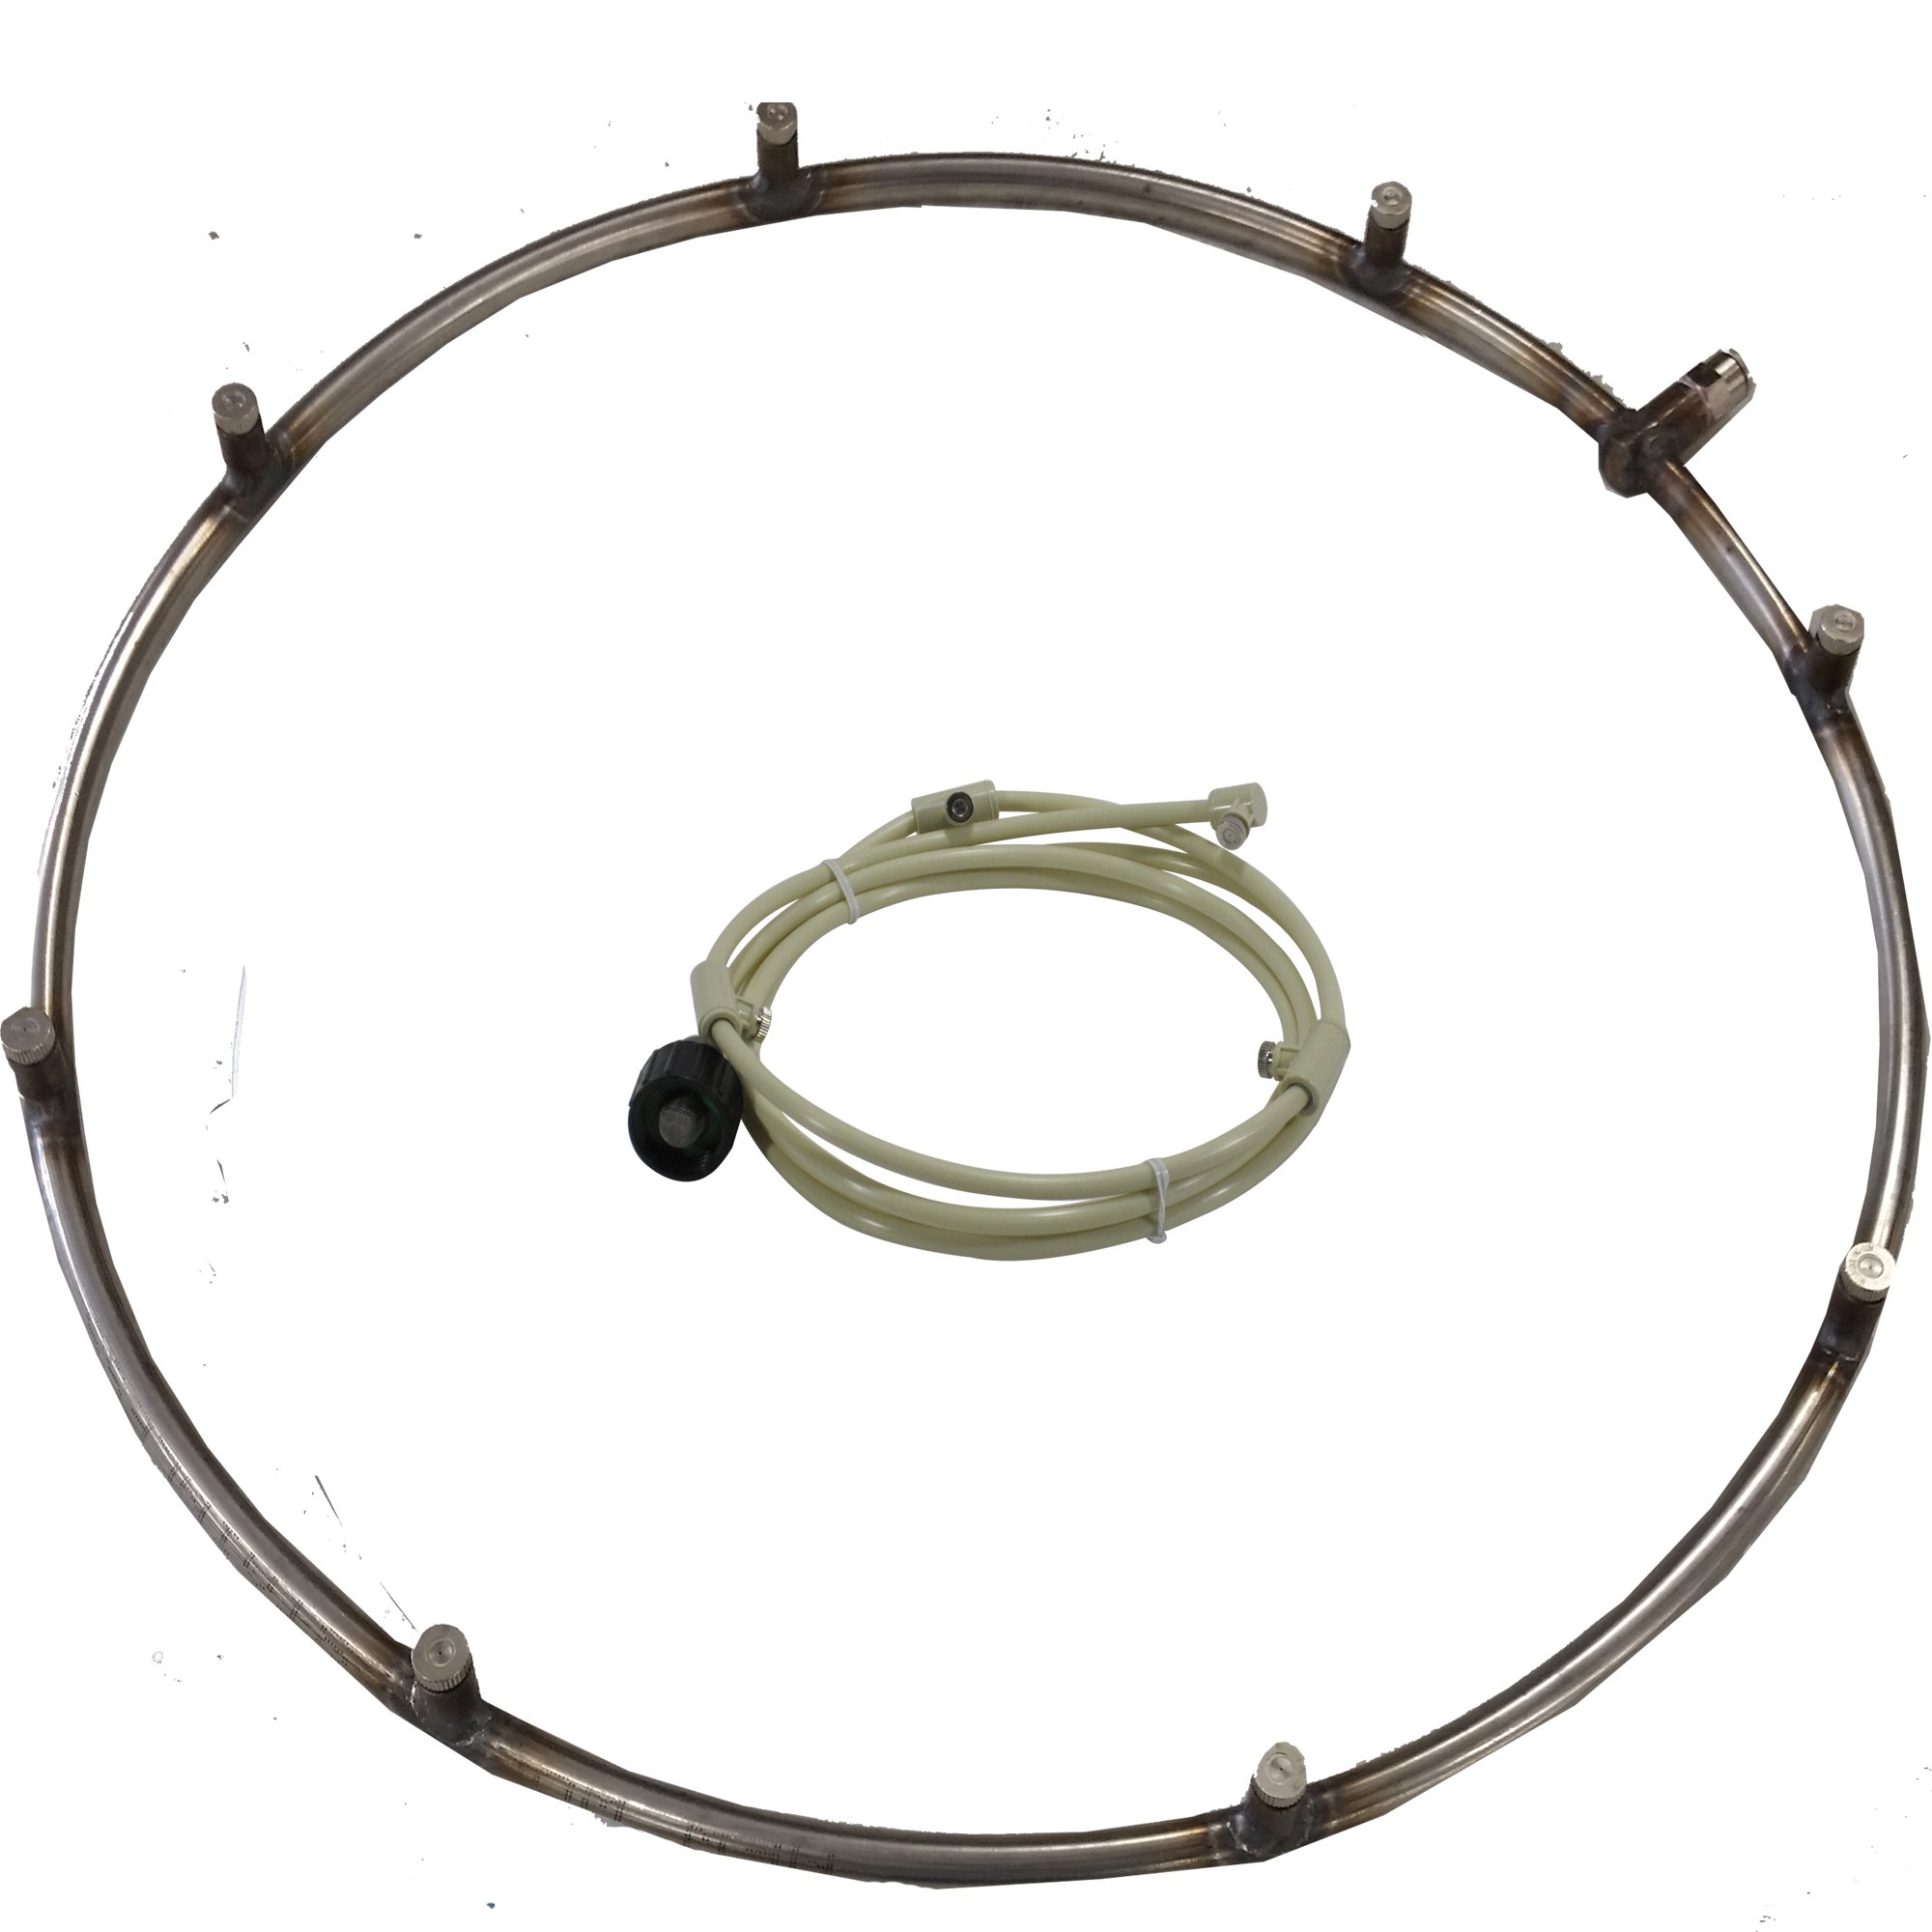 Misting Fan Ring - Stainless Steel Ring with Feed Line and Misting Nozzles - Ideal as Patio Misting system, for Warehouse Misting. can be used with Mistcooling Pump. (25'' Dia 10 Nozzles 6ft Line)